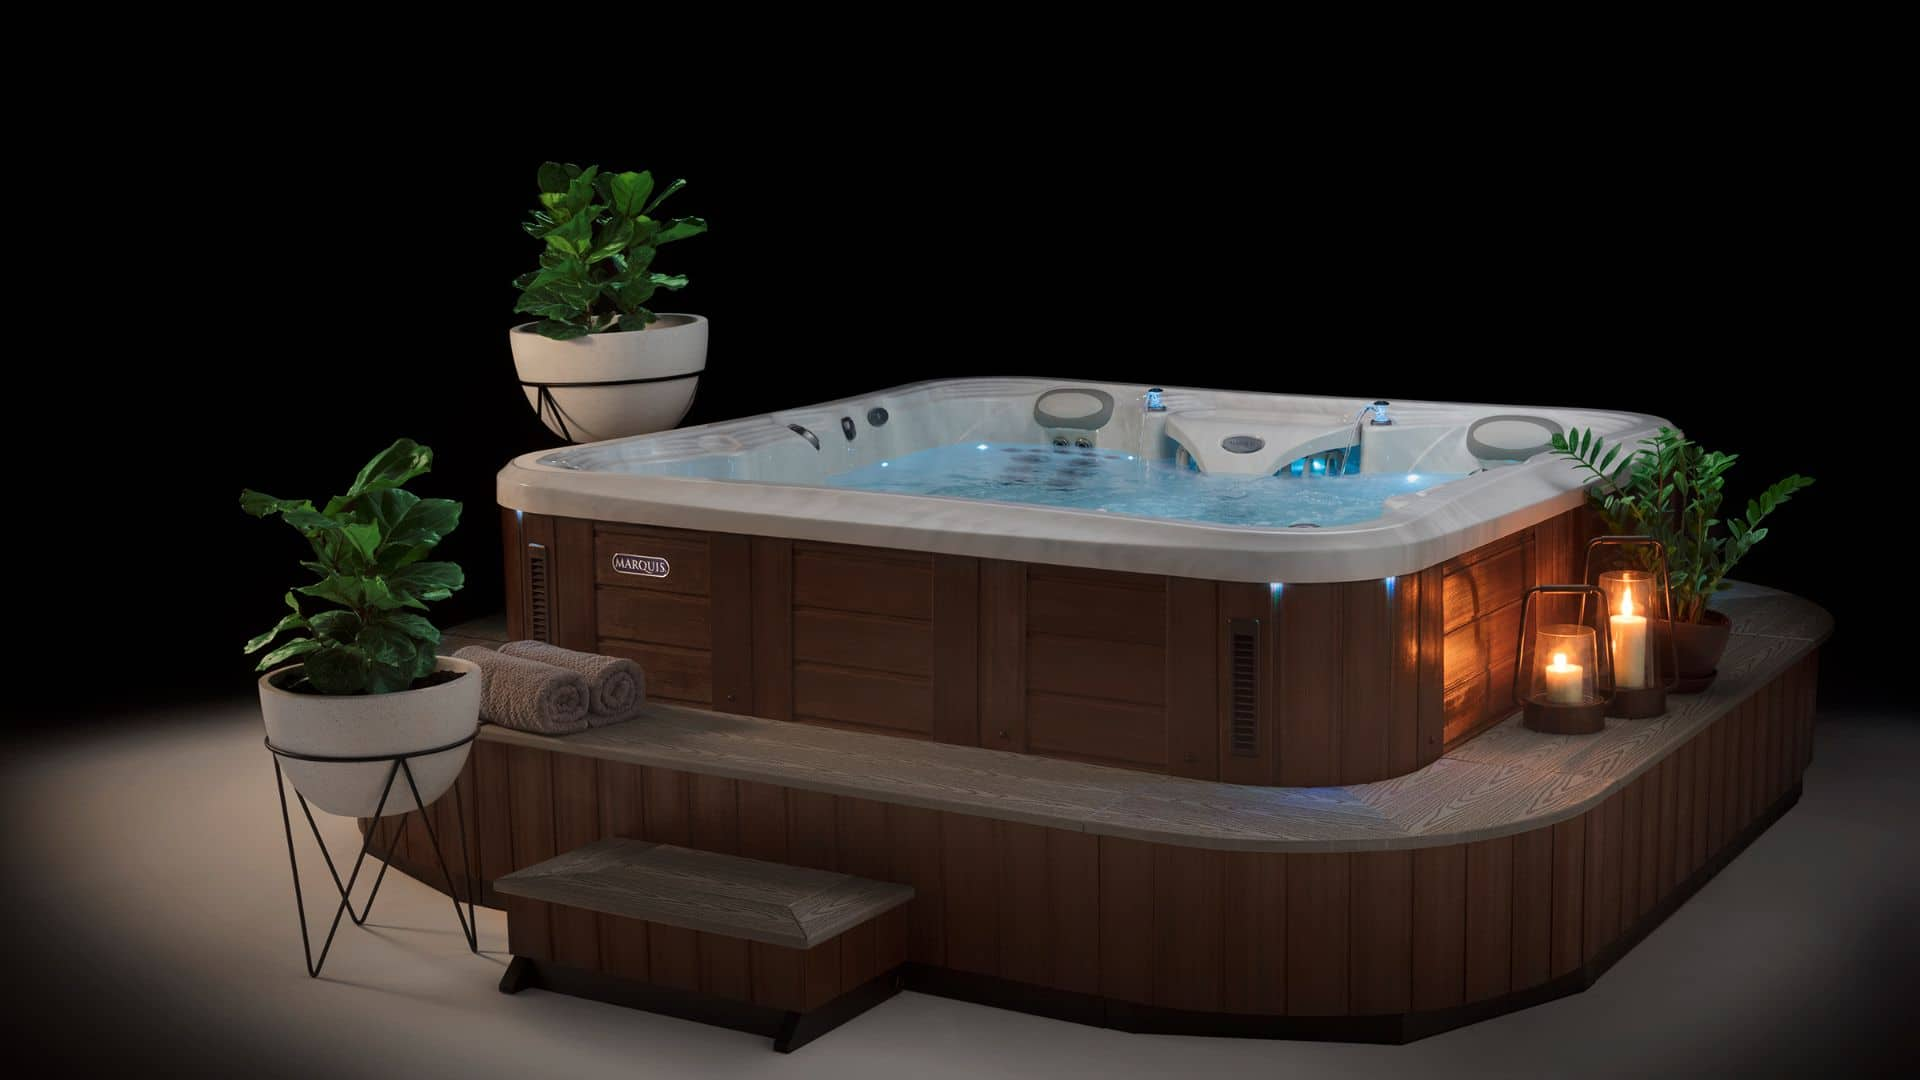 Before Buying a Hot Tub